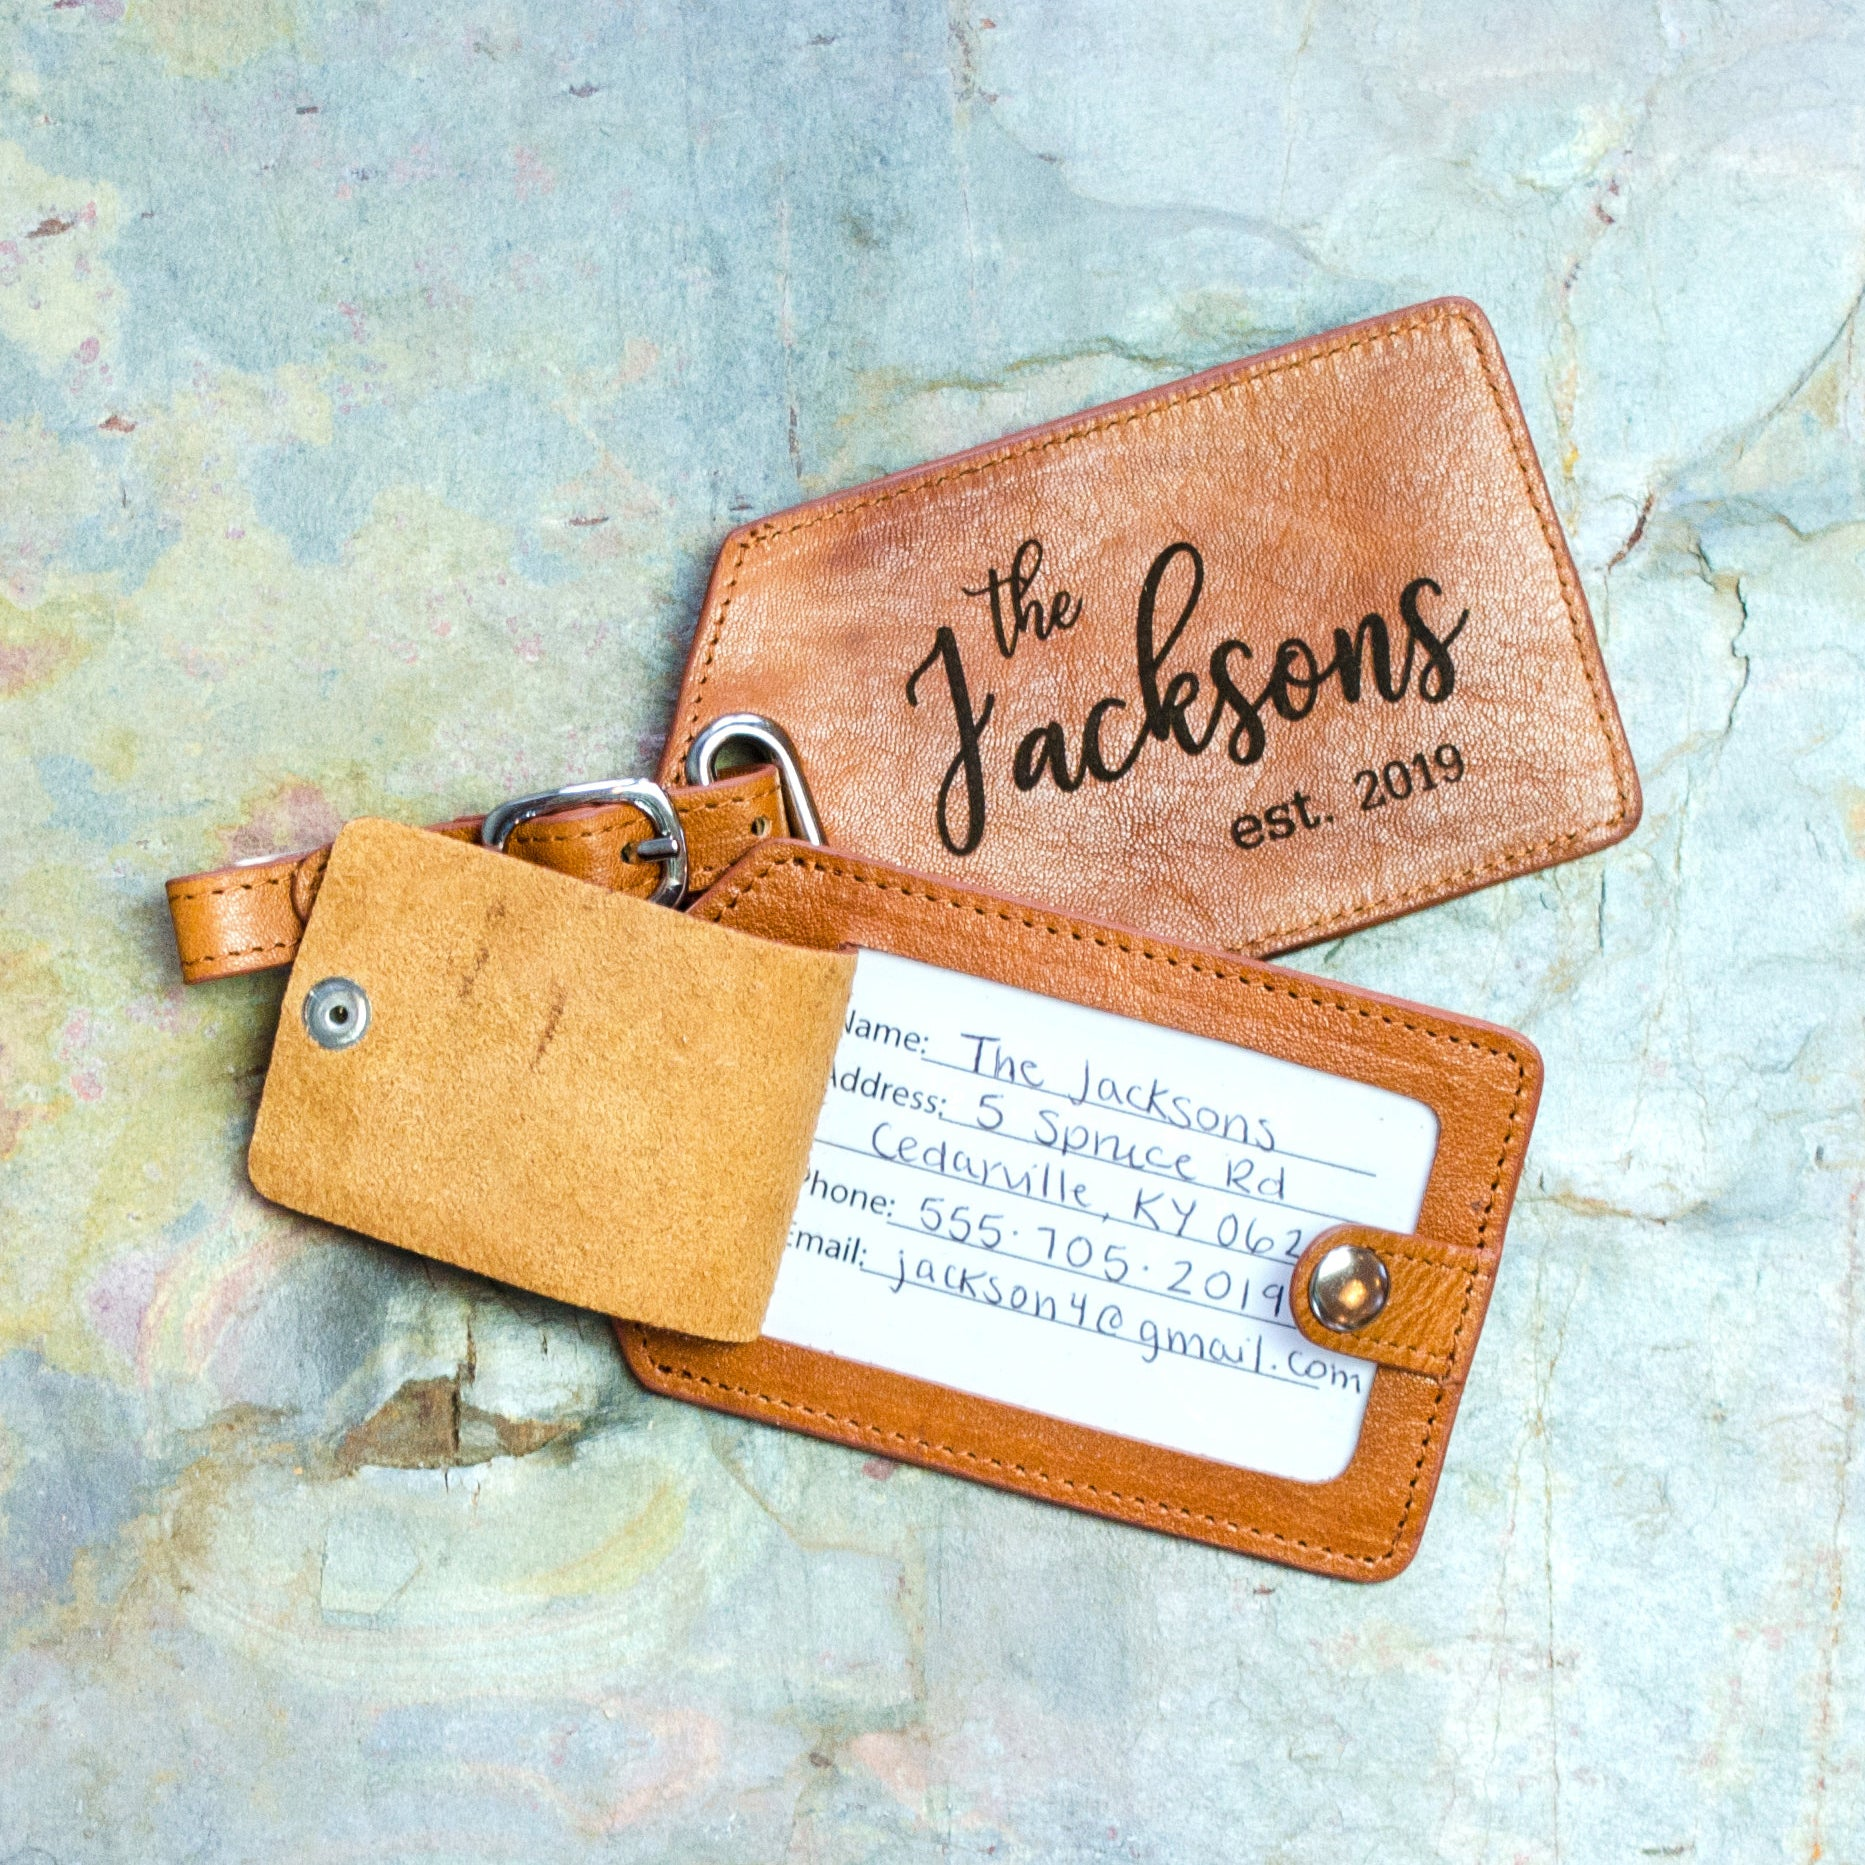 Jackson Leather Keyring Birthday Name Optional Engraving